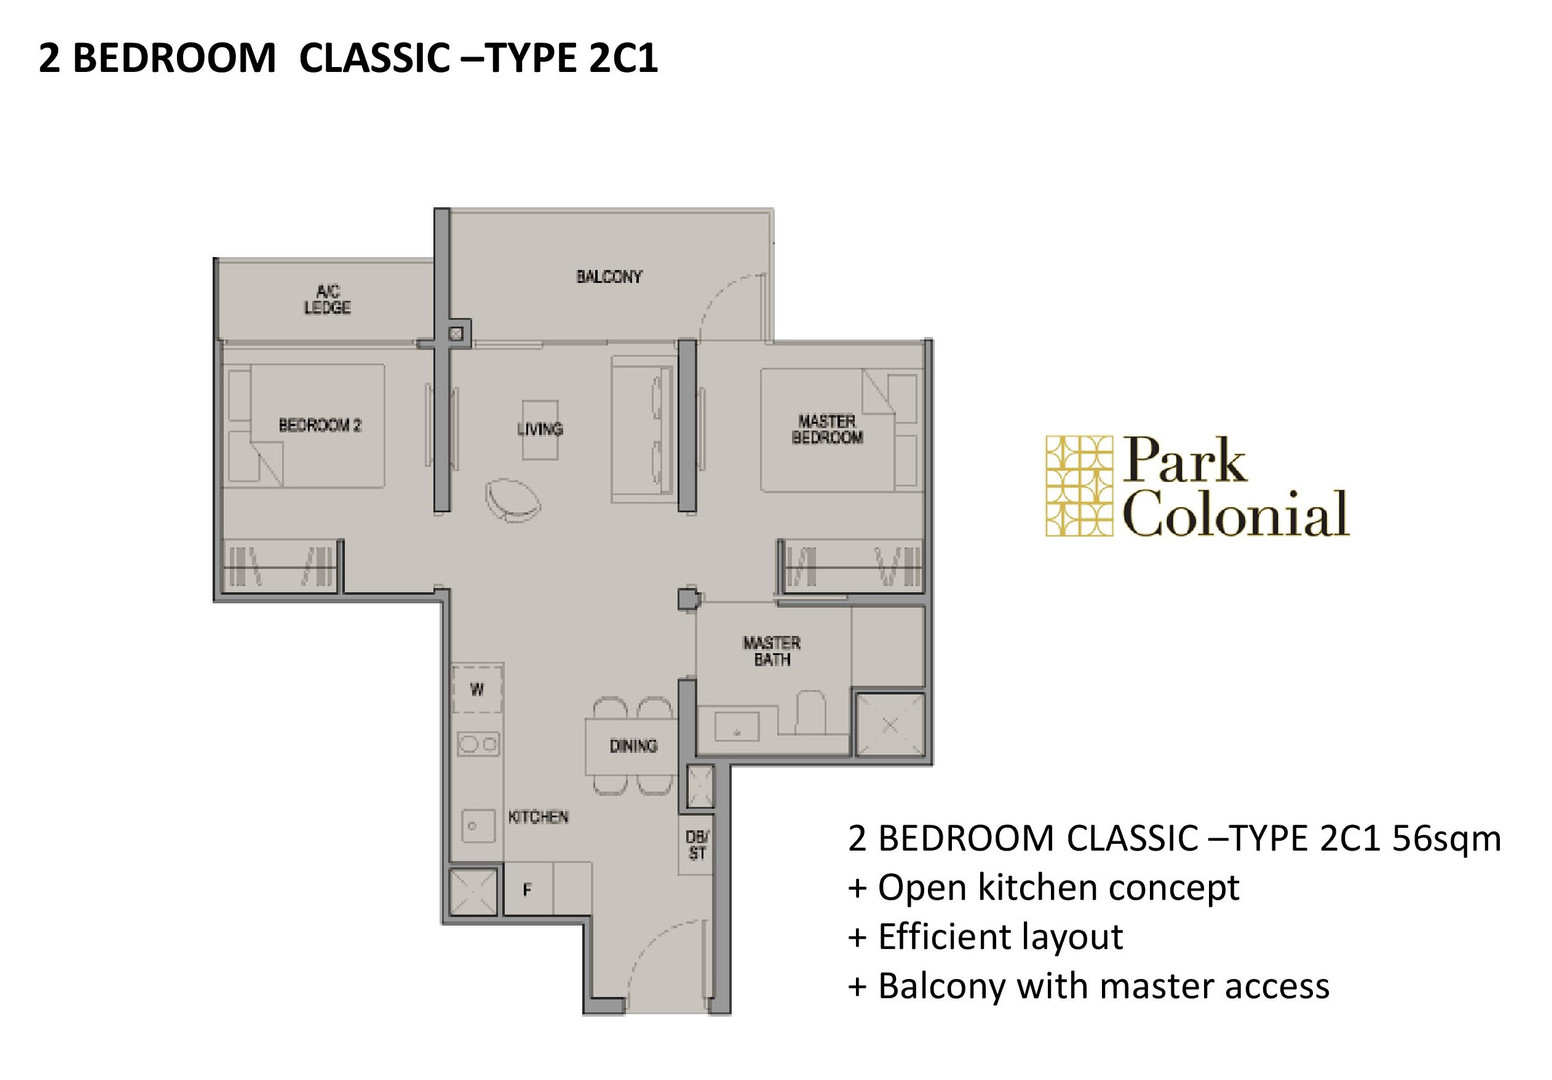 Park Colonial 2 Bedroom Classic - Type 2C1